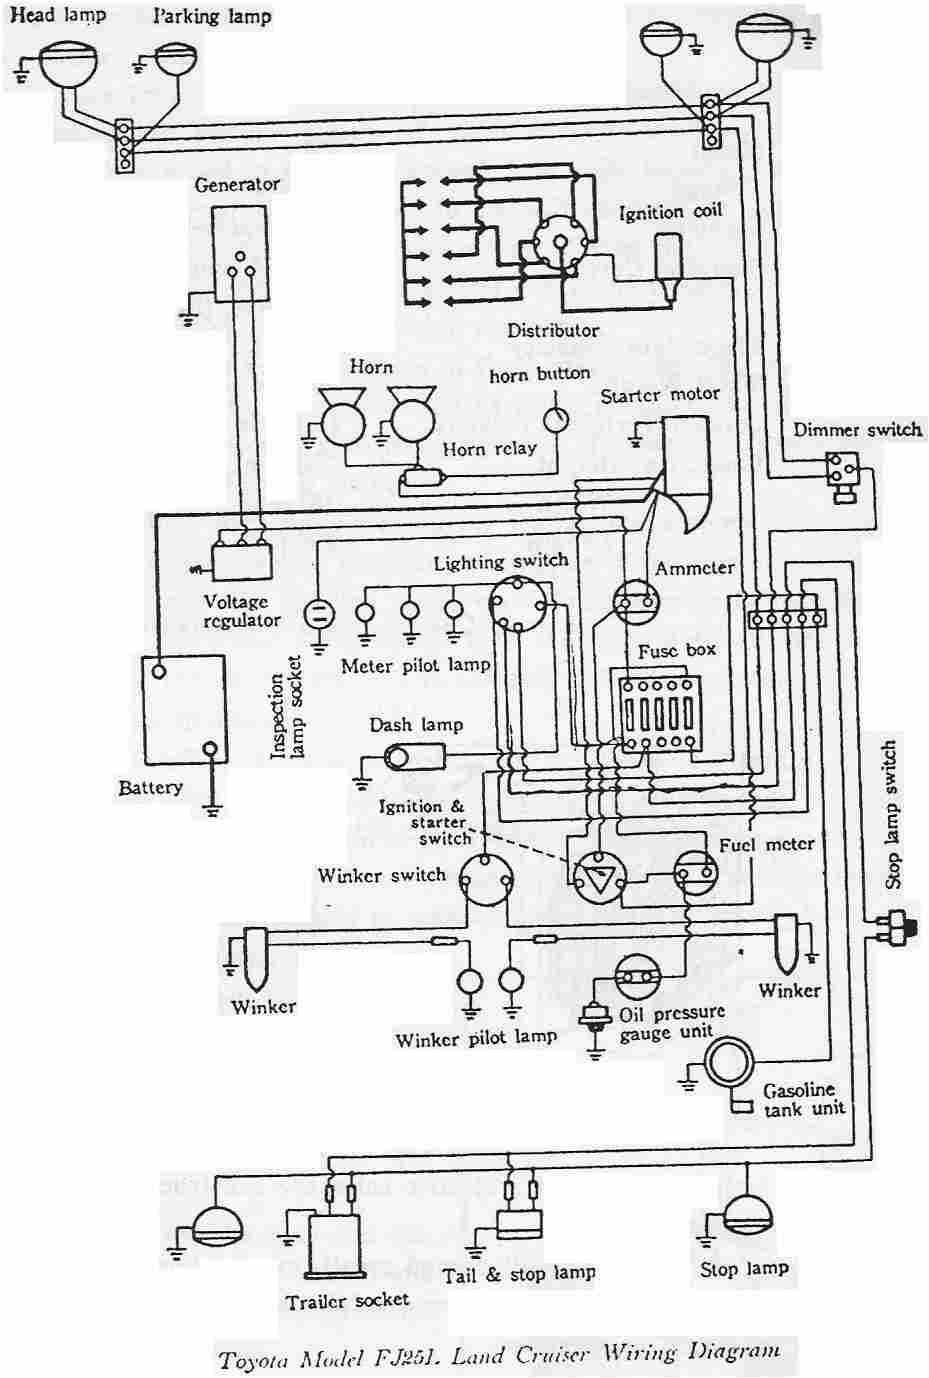 category 5e wiring diagram kohler 5e wiring diagram toyota land cruiser fj25 electrical wiring diagram all